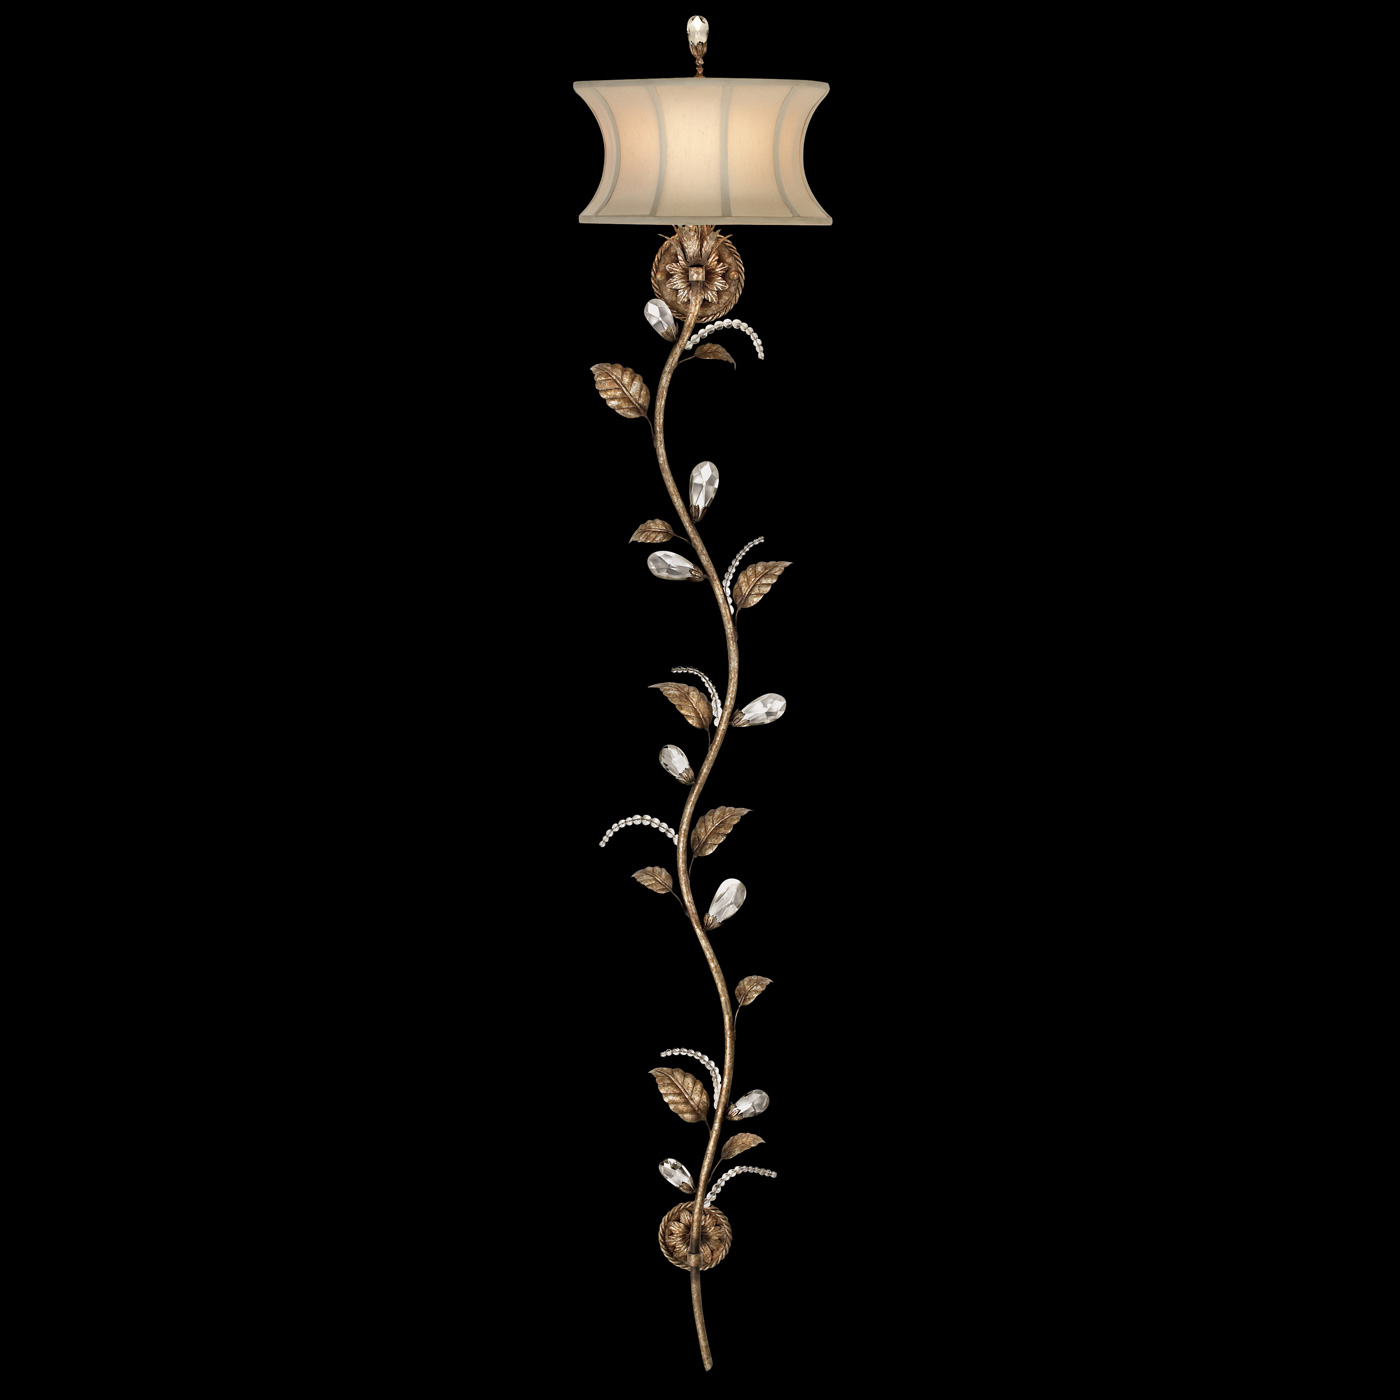 Wall Sconces Long : A Midsummer Night s Dream Long Wall Sconce by Fine Art Lamps 427150